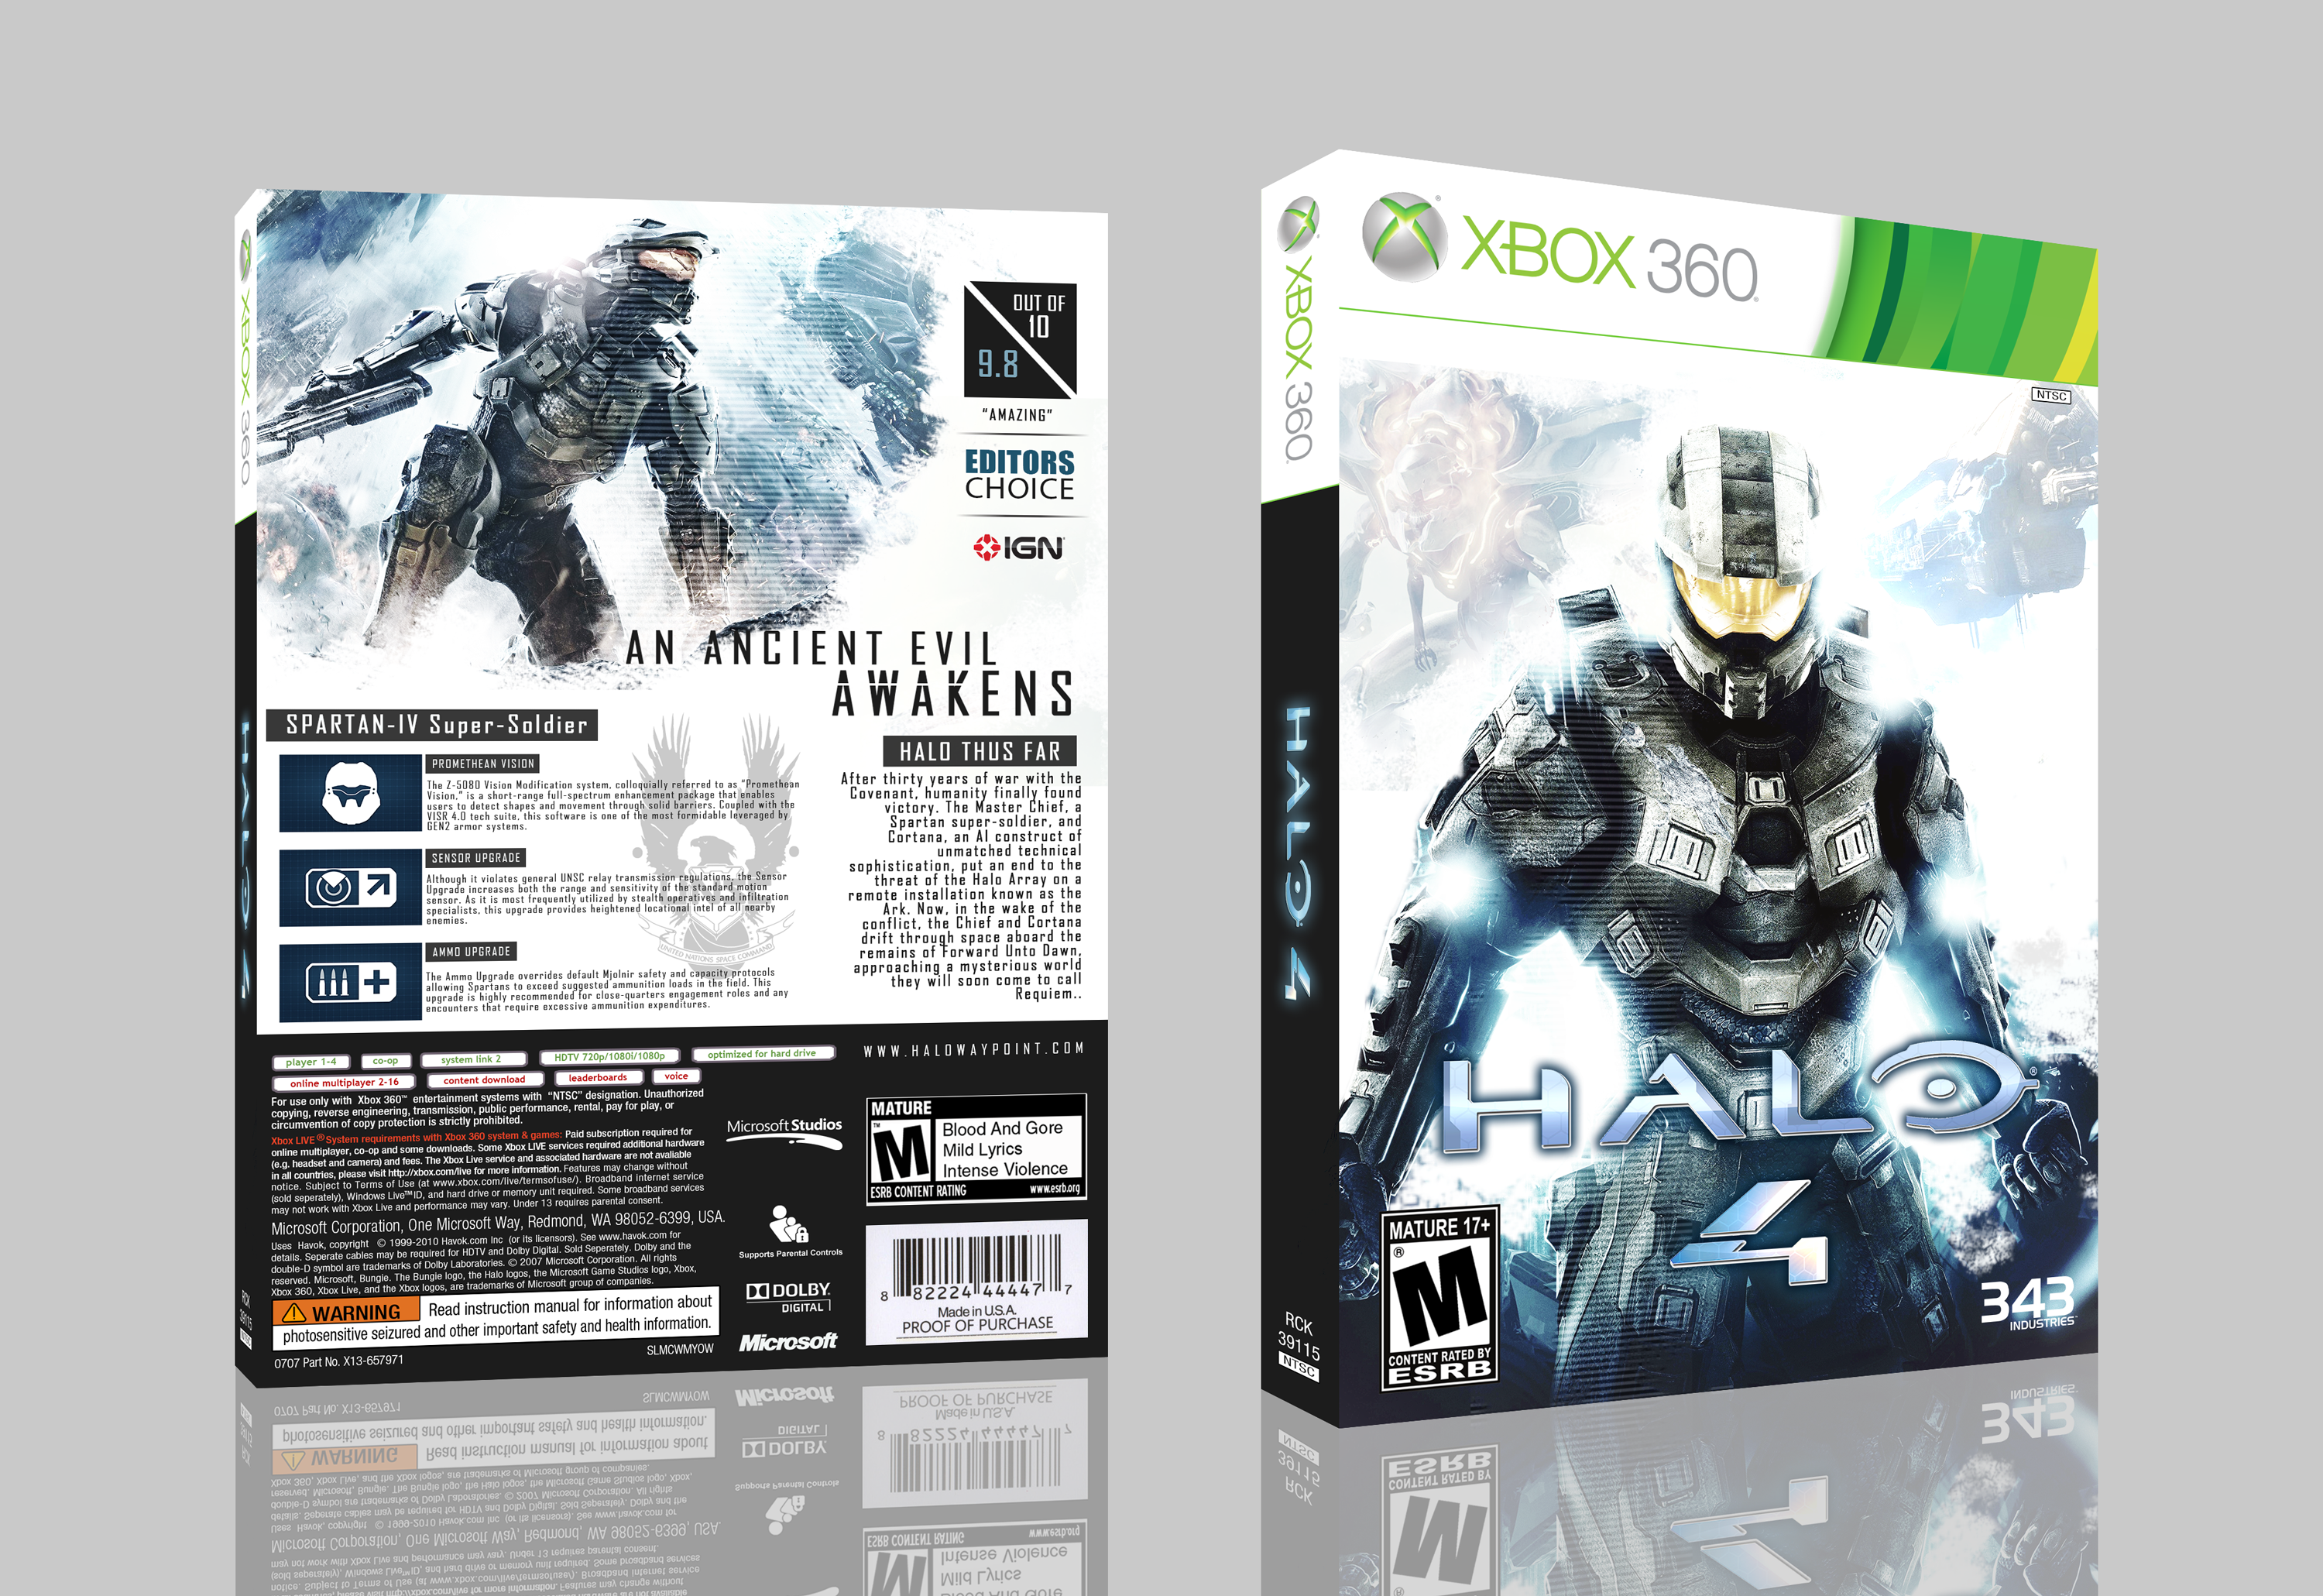 Viewing full size Halo 4 box cover